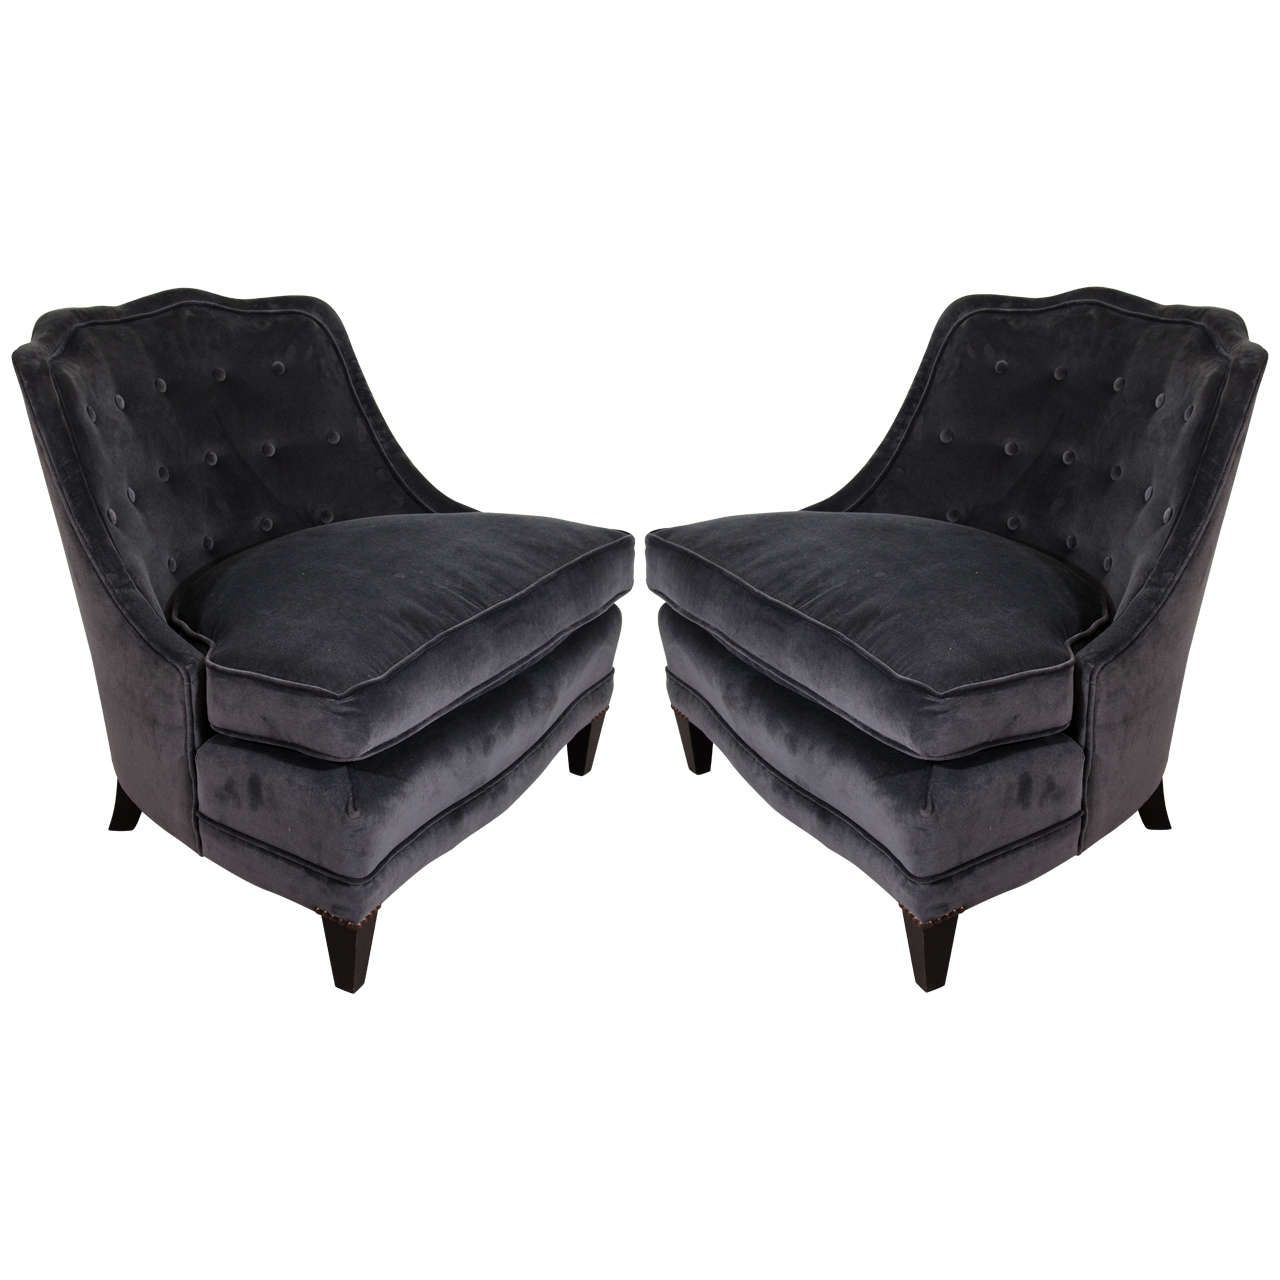 Midcentury Pair of Barrel Back Henredon Chairs in Charcoal Velvet | From a unique collection of  sc 1 st  Pinterest & Midcentury Pair of Barrel Back Henredon Chairs in Charcoal Velvet ...